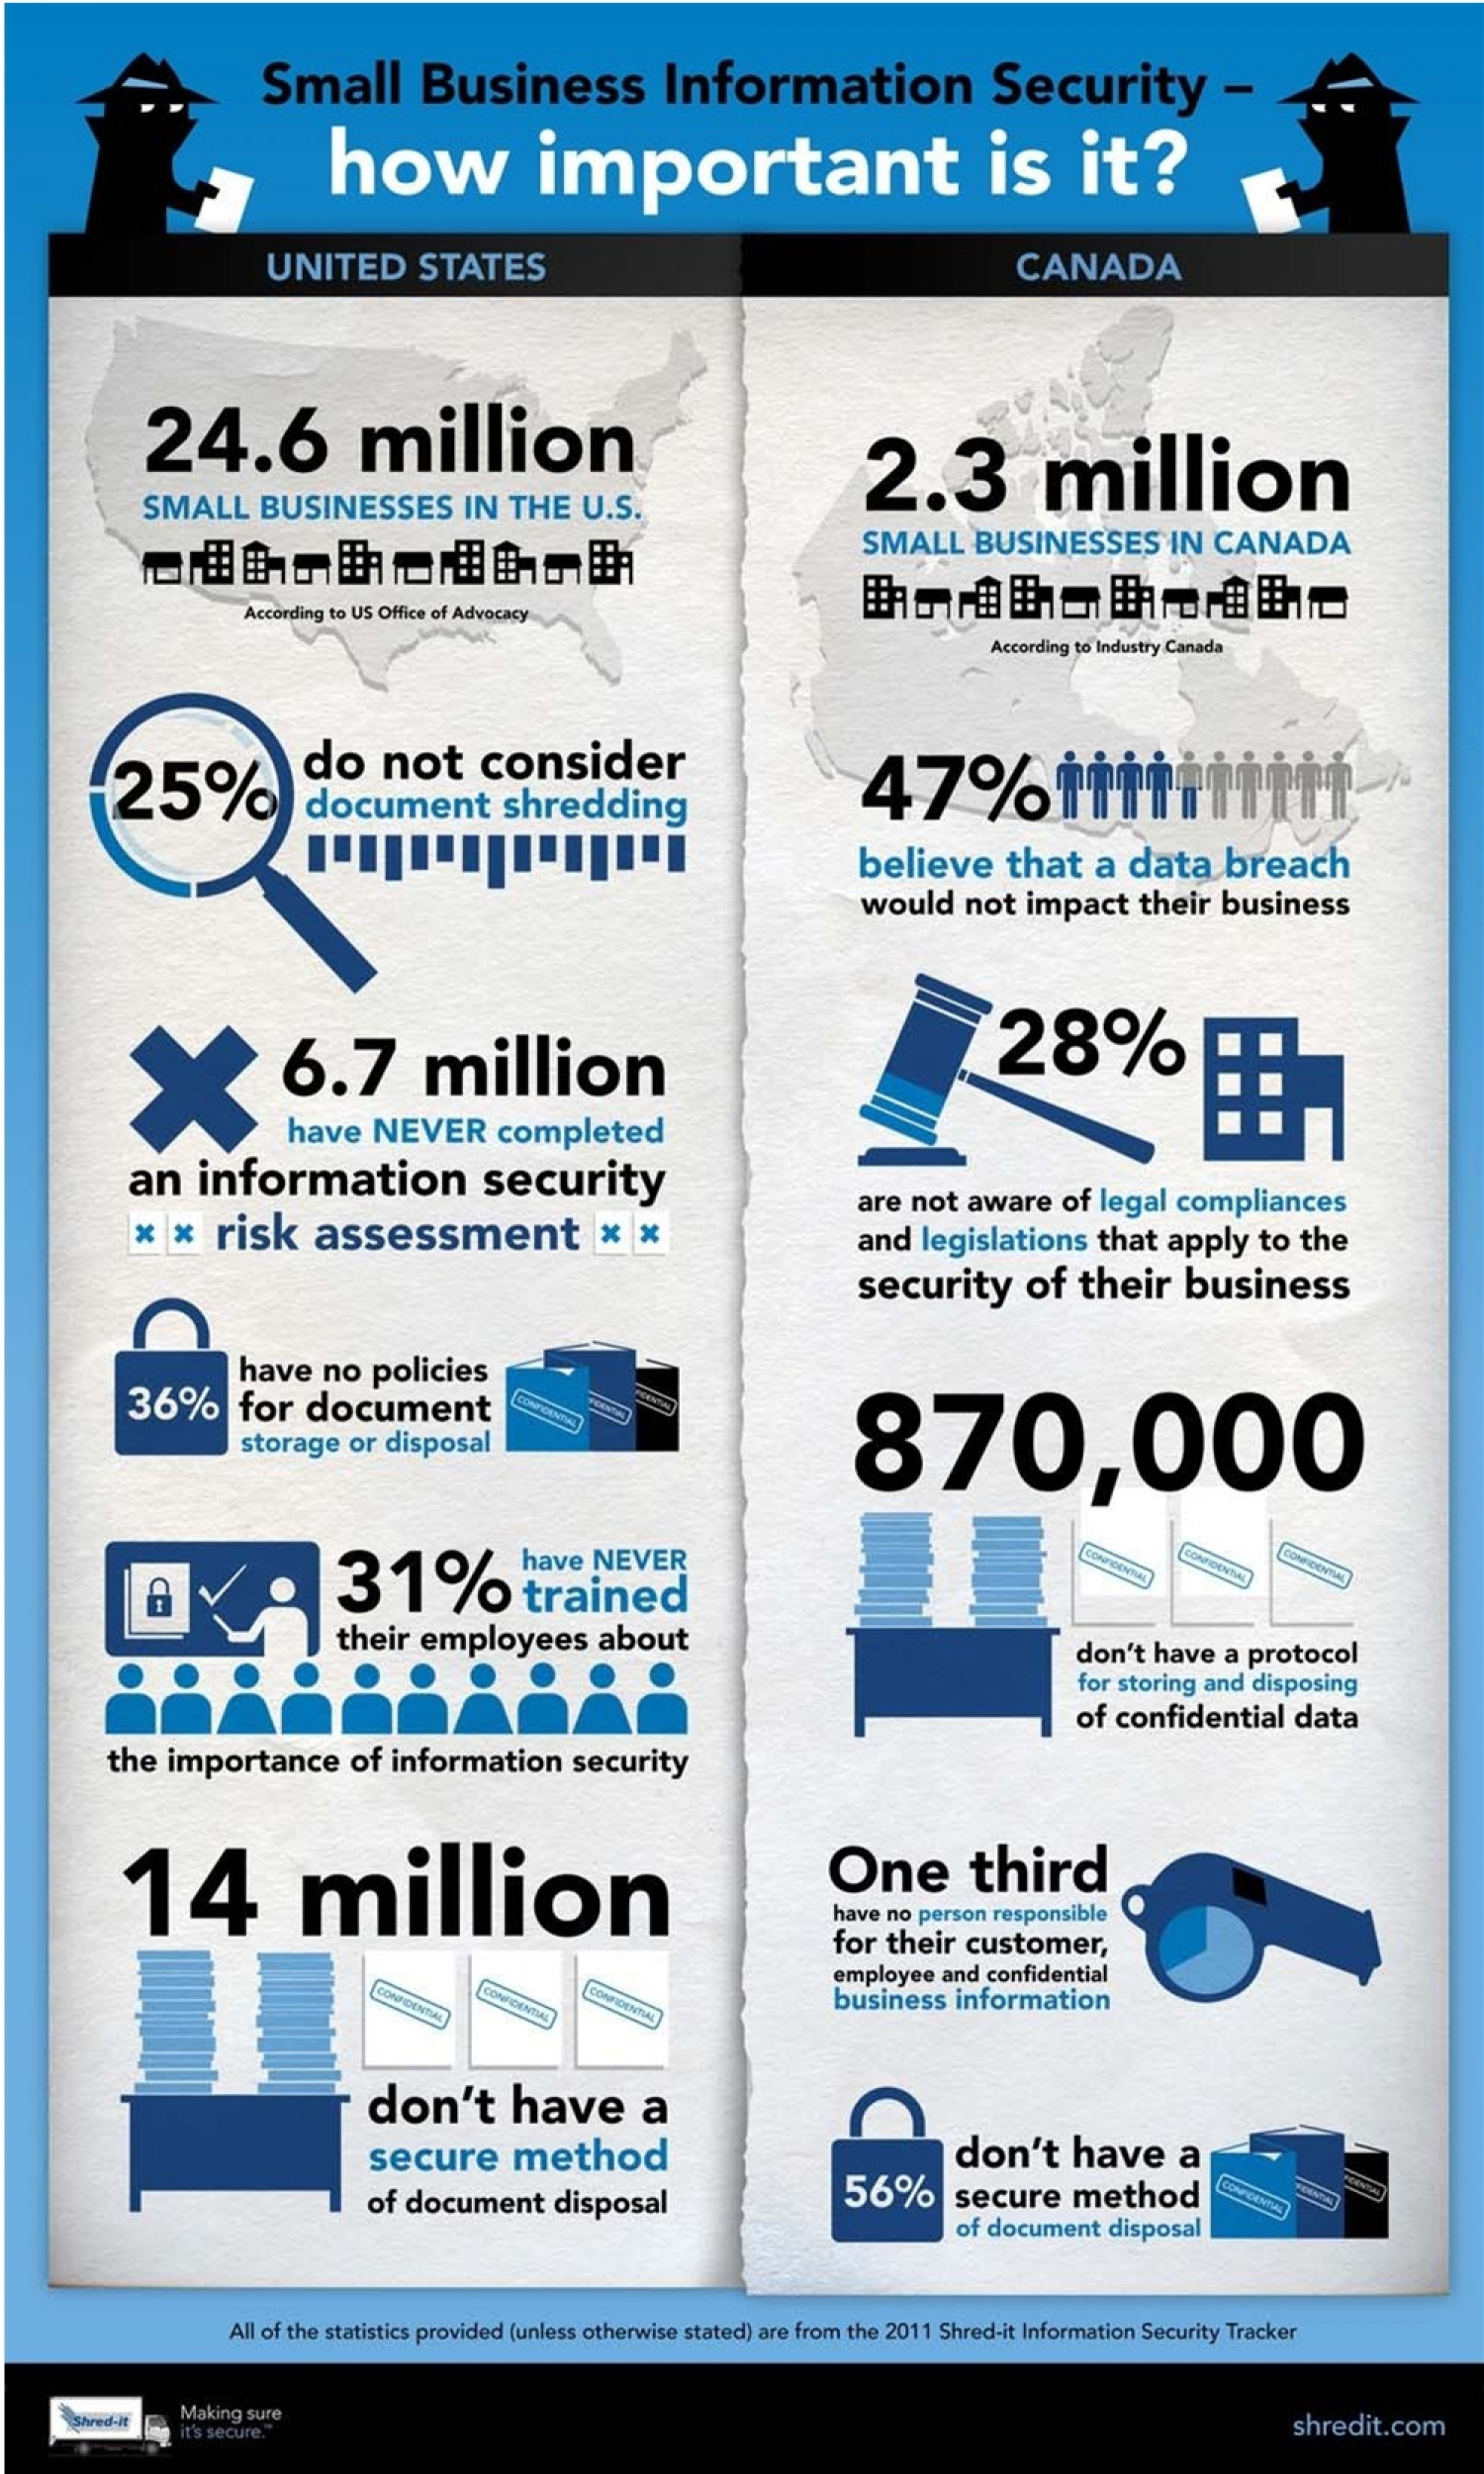 Small Business Information Security Infographic